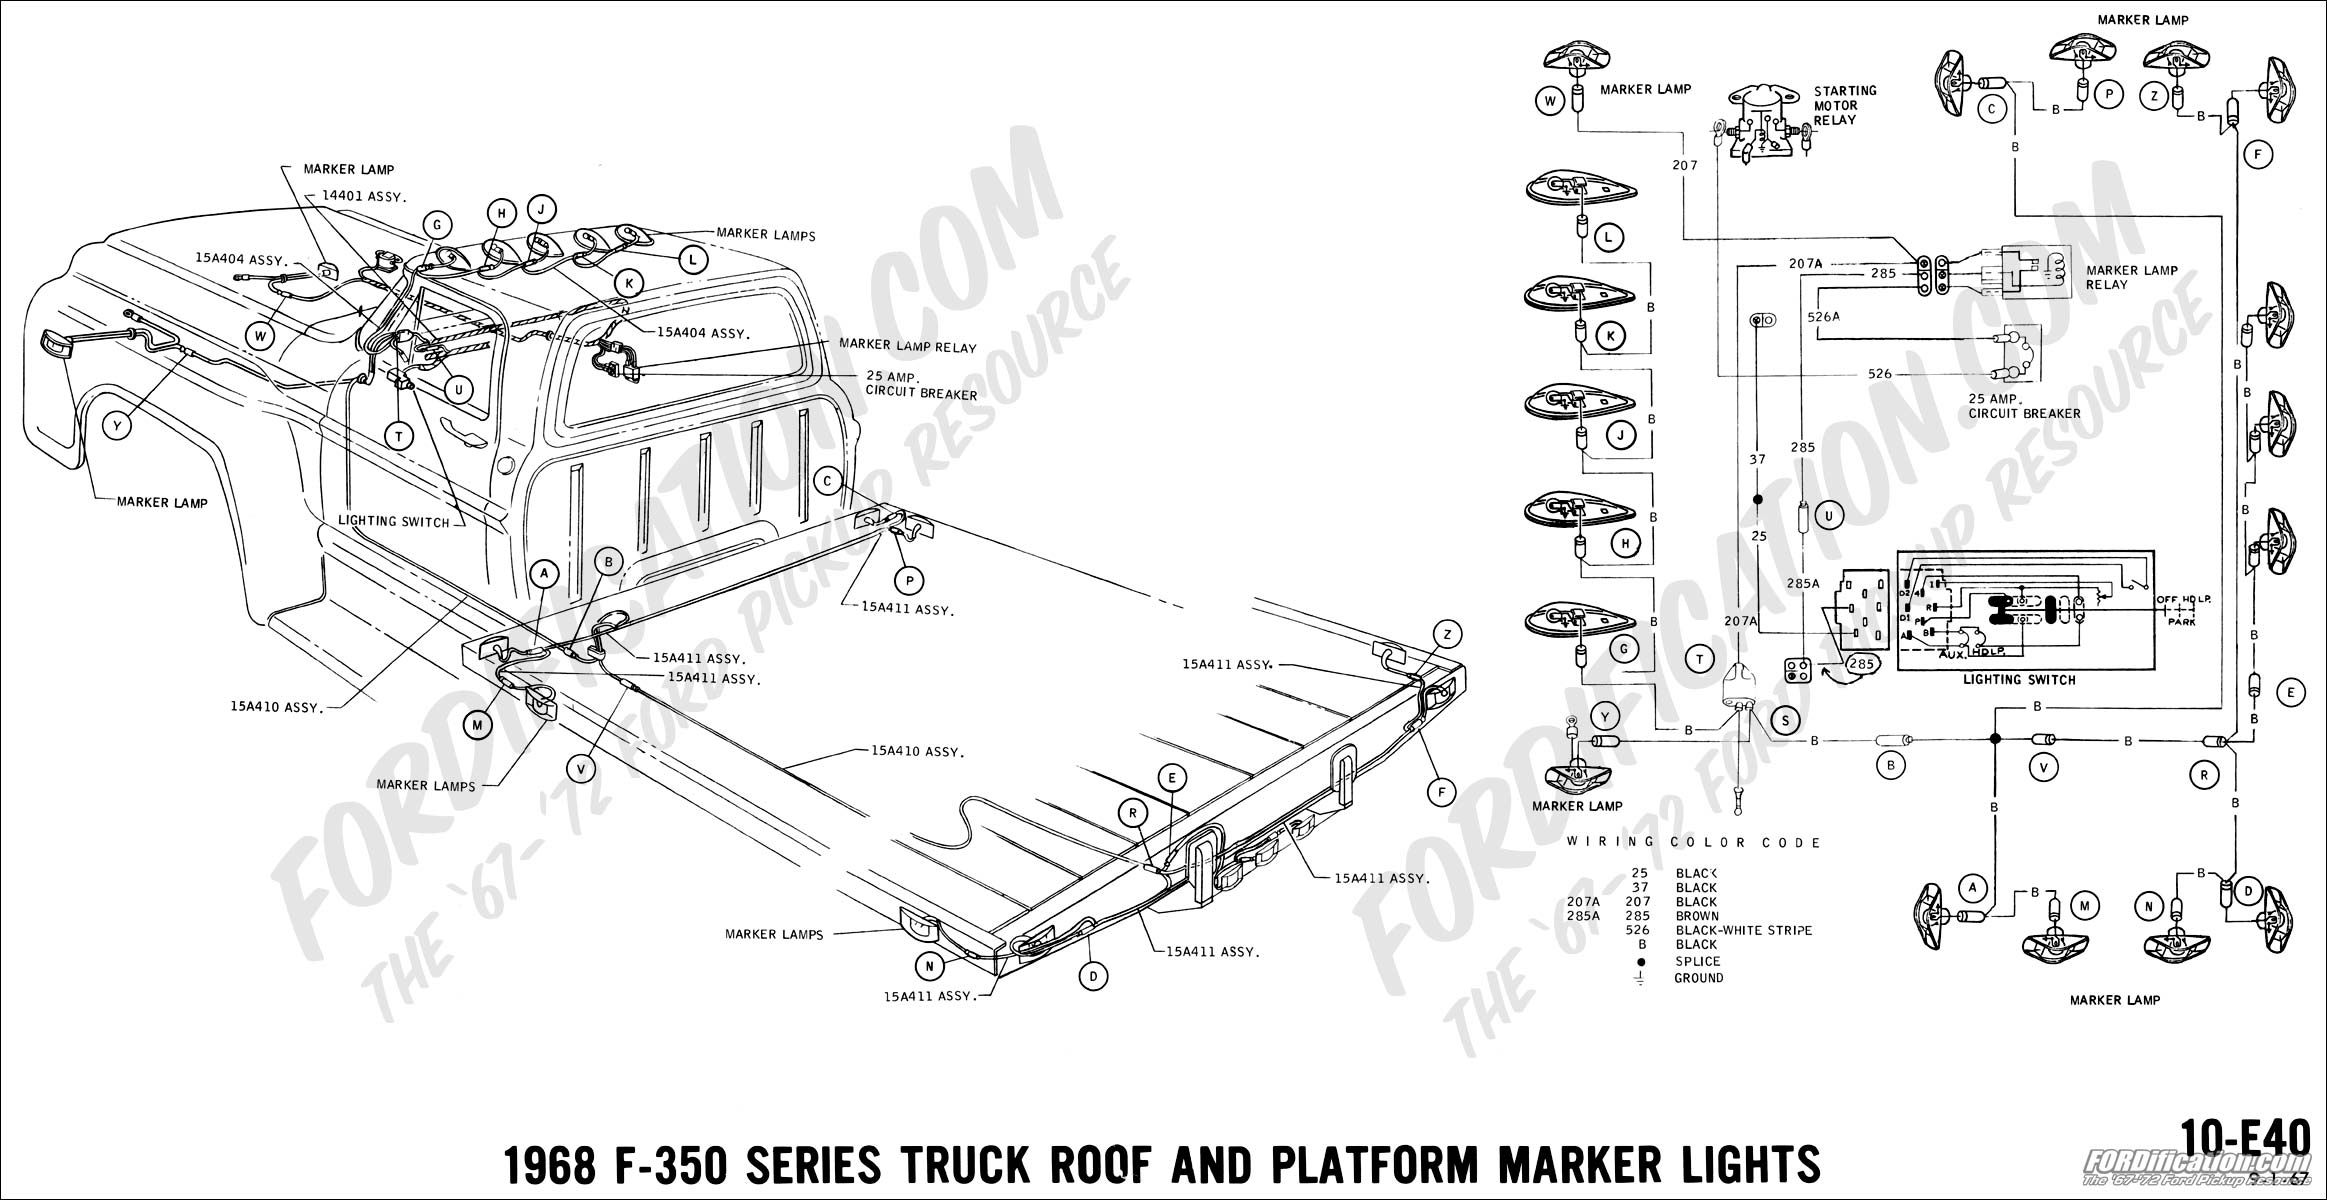 68 42 cab light wiring diagram e36 dome light wiring diagram \u2022 indy500 co  at n-0.co